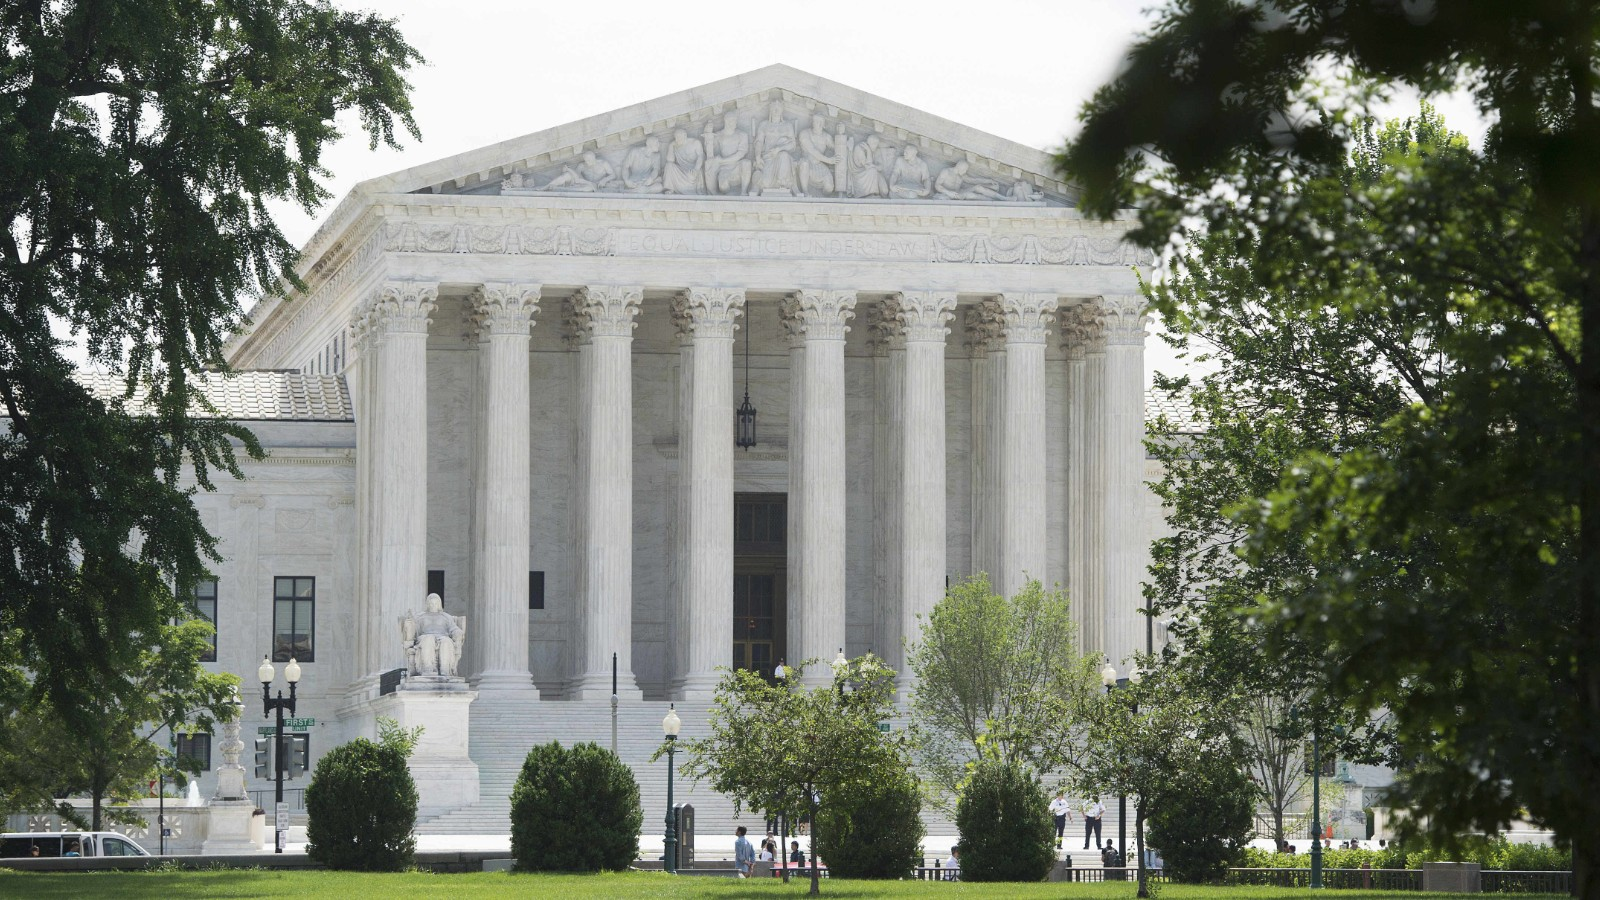 Travel ban case: Here's what the Supreme Court might look ...